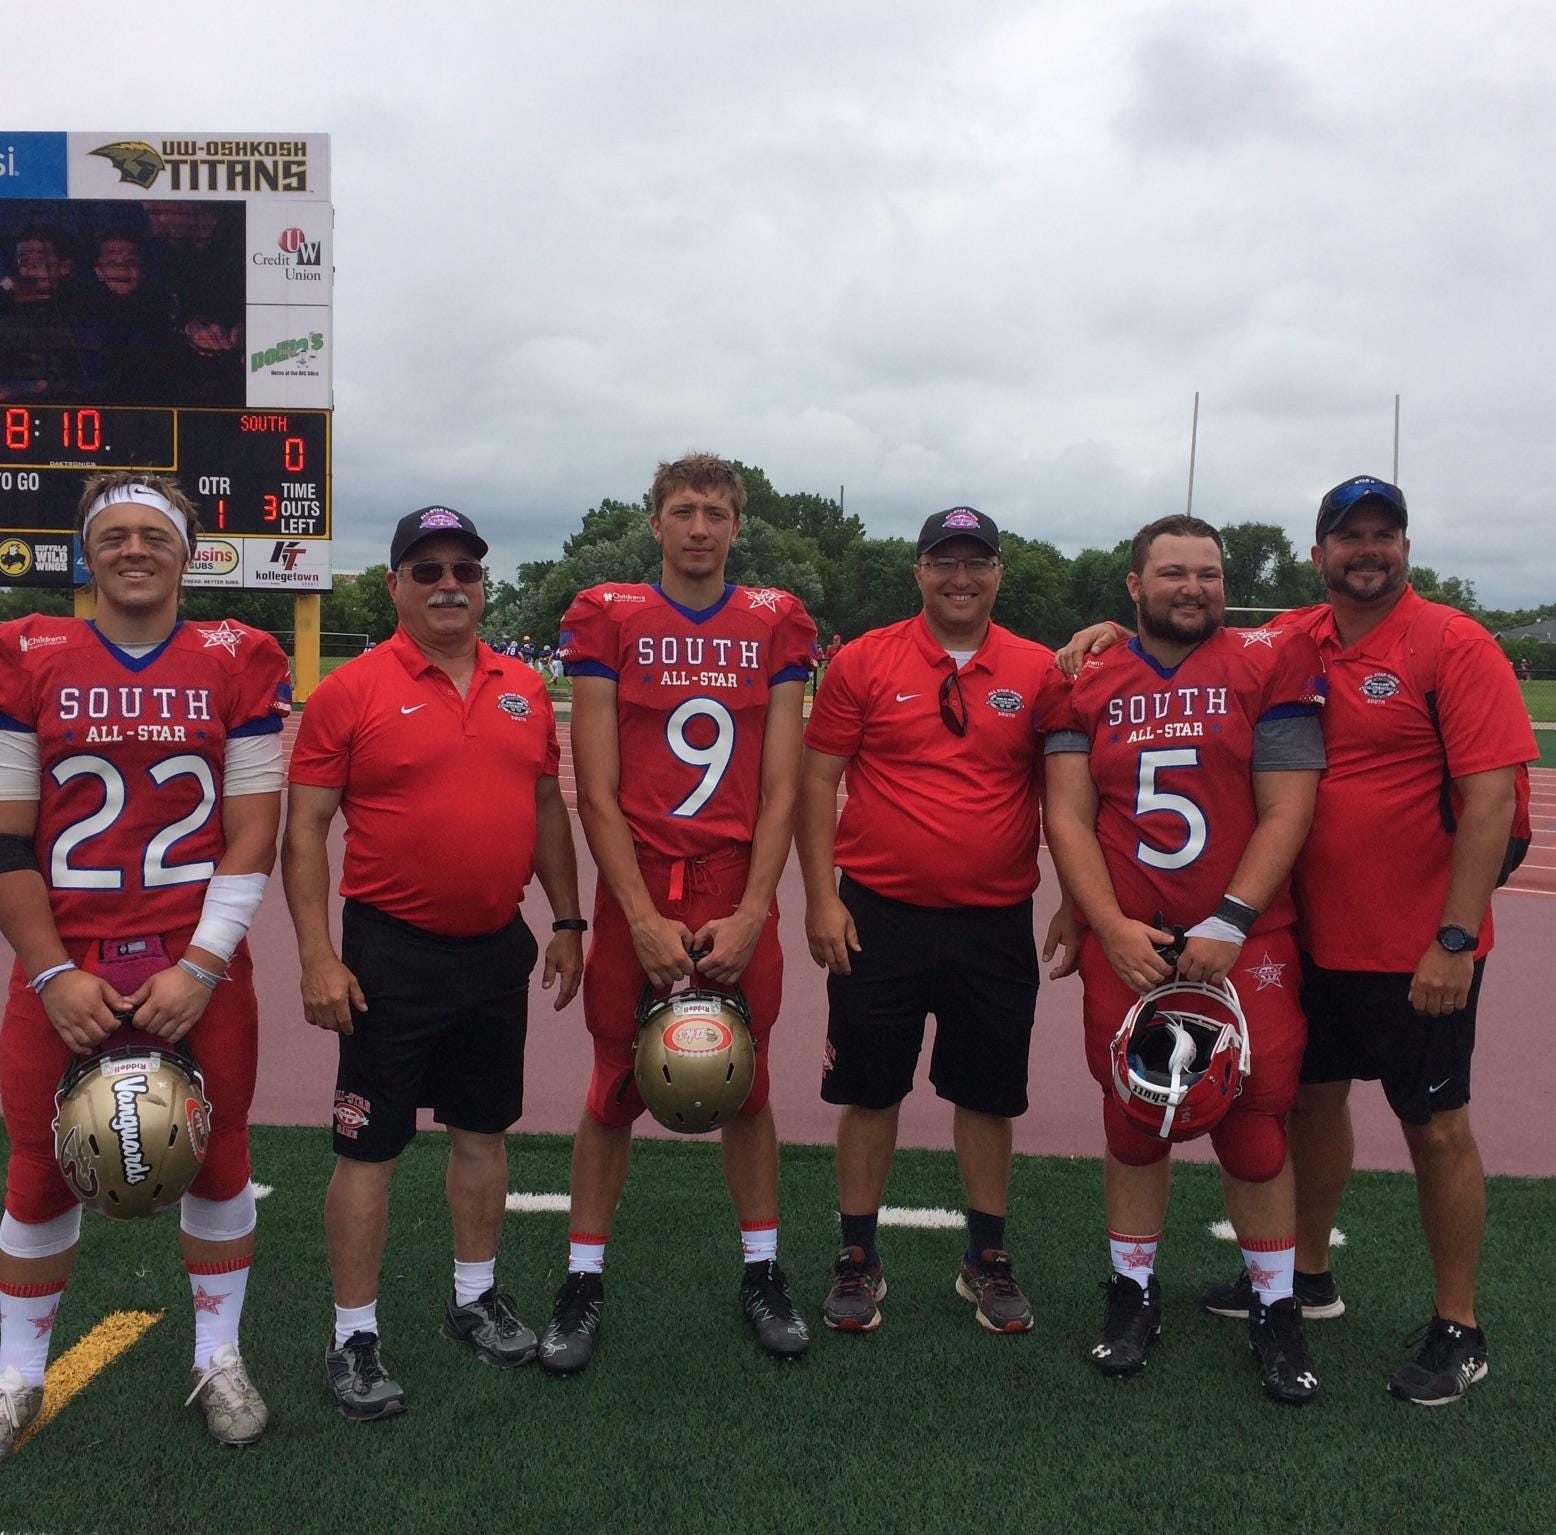 Lena/STAA represented at All-Star game